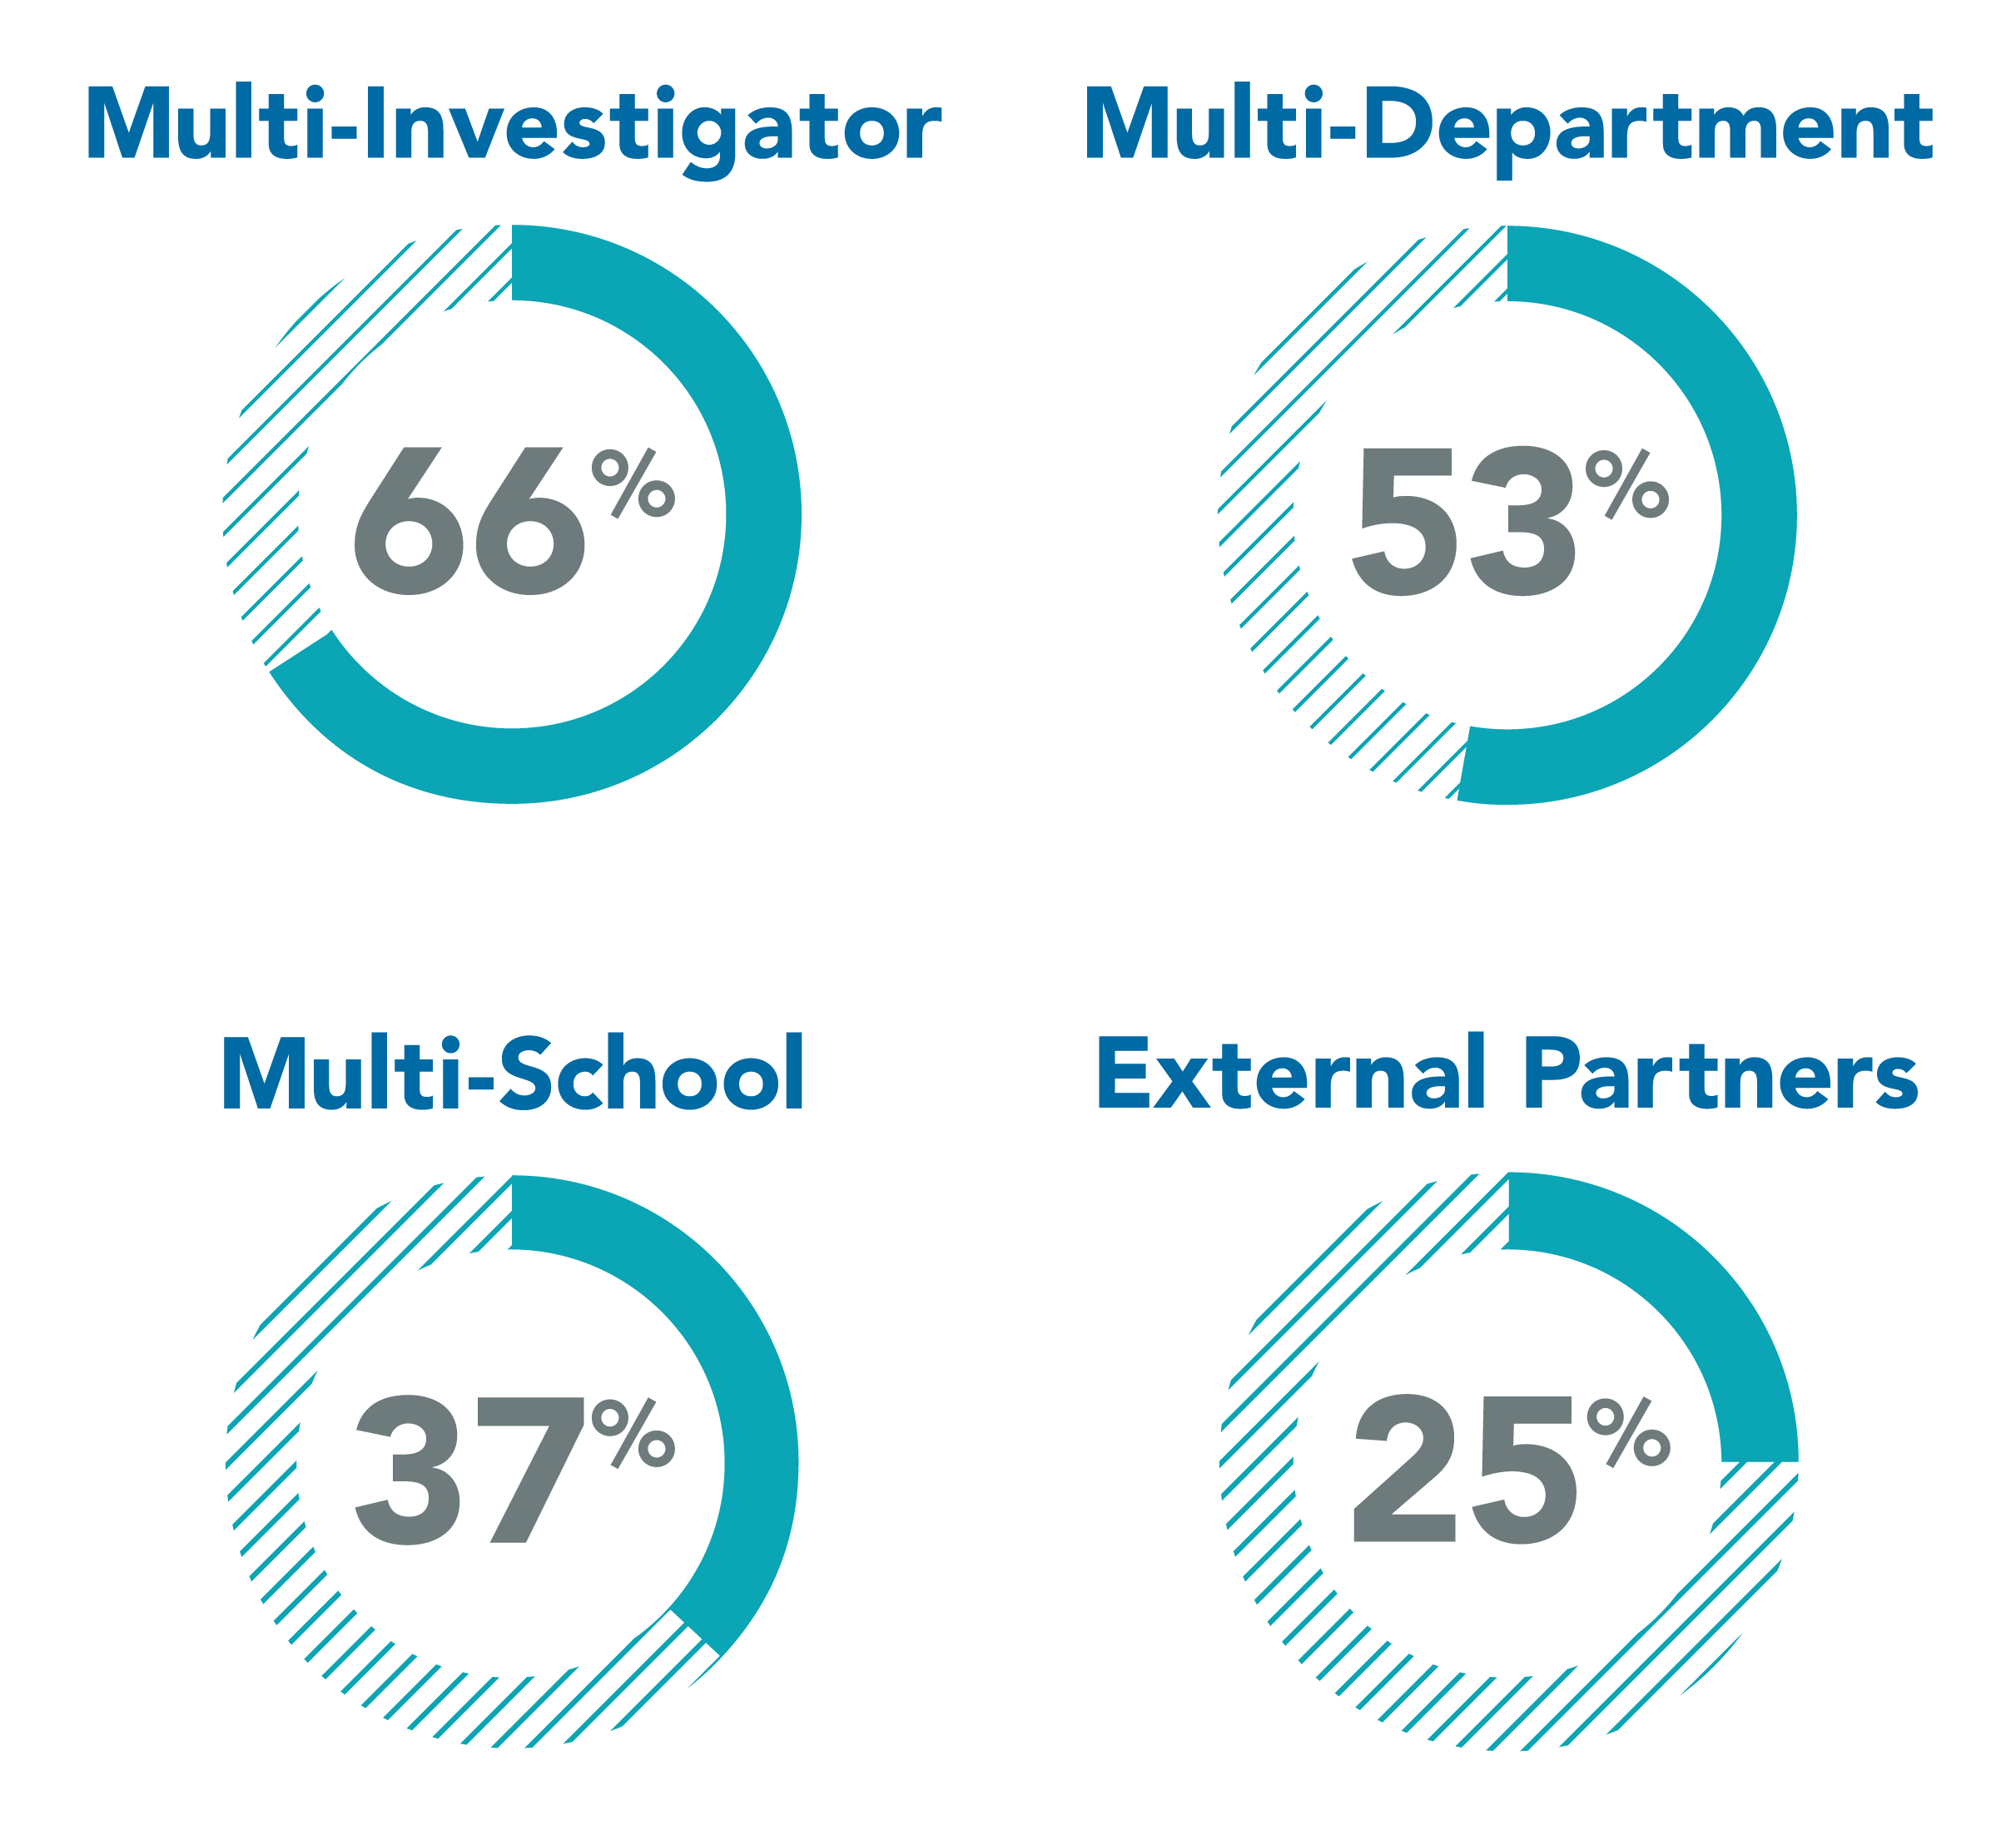 Four pie charts showing that Multi-Investigator research was 66%, multi-department was 53%, multi-school was 37%, and external partners were 25% in 2018.